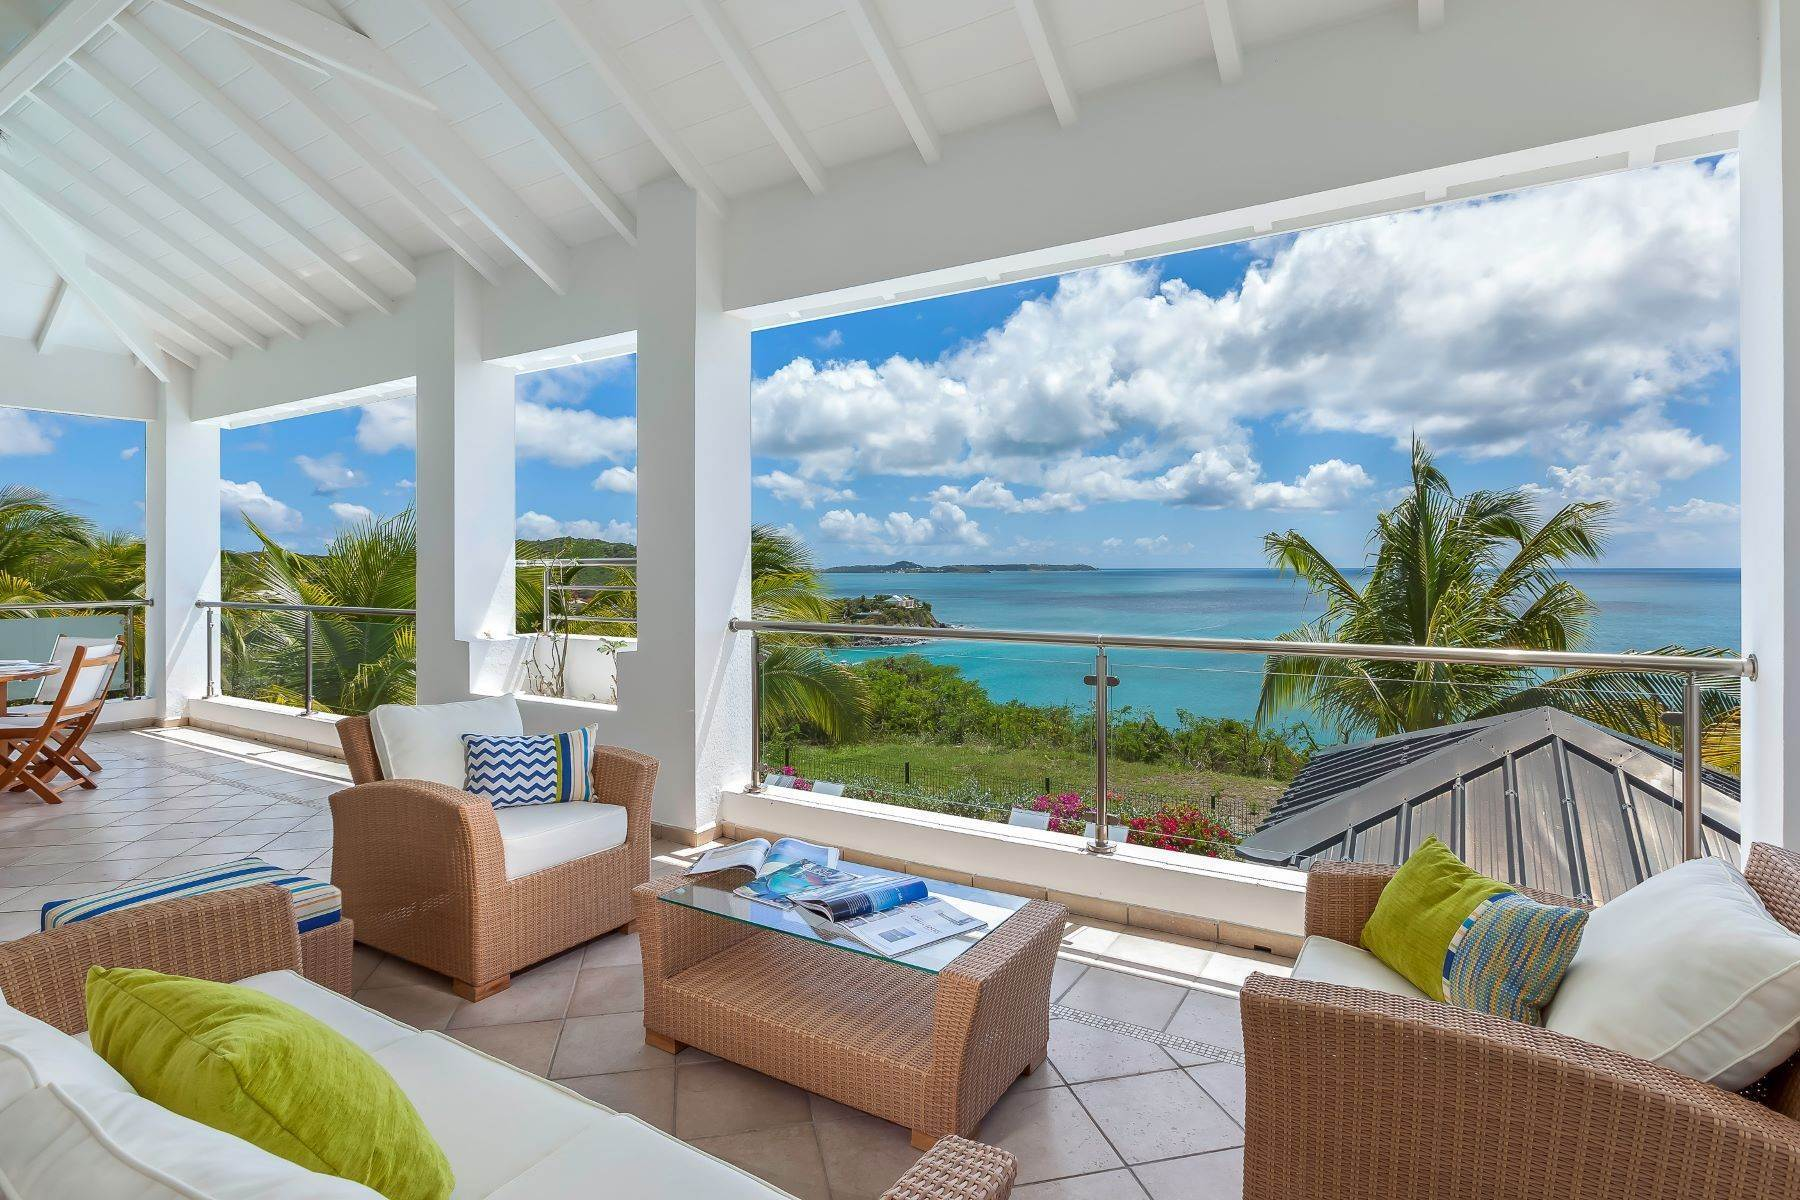 Single Family Homes for Sale at Sea Dream Happy Bay, 97150, St. Martin